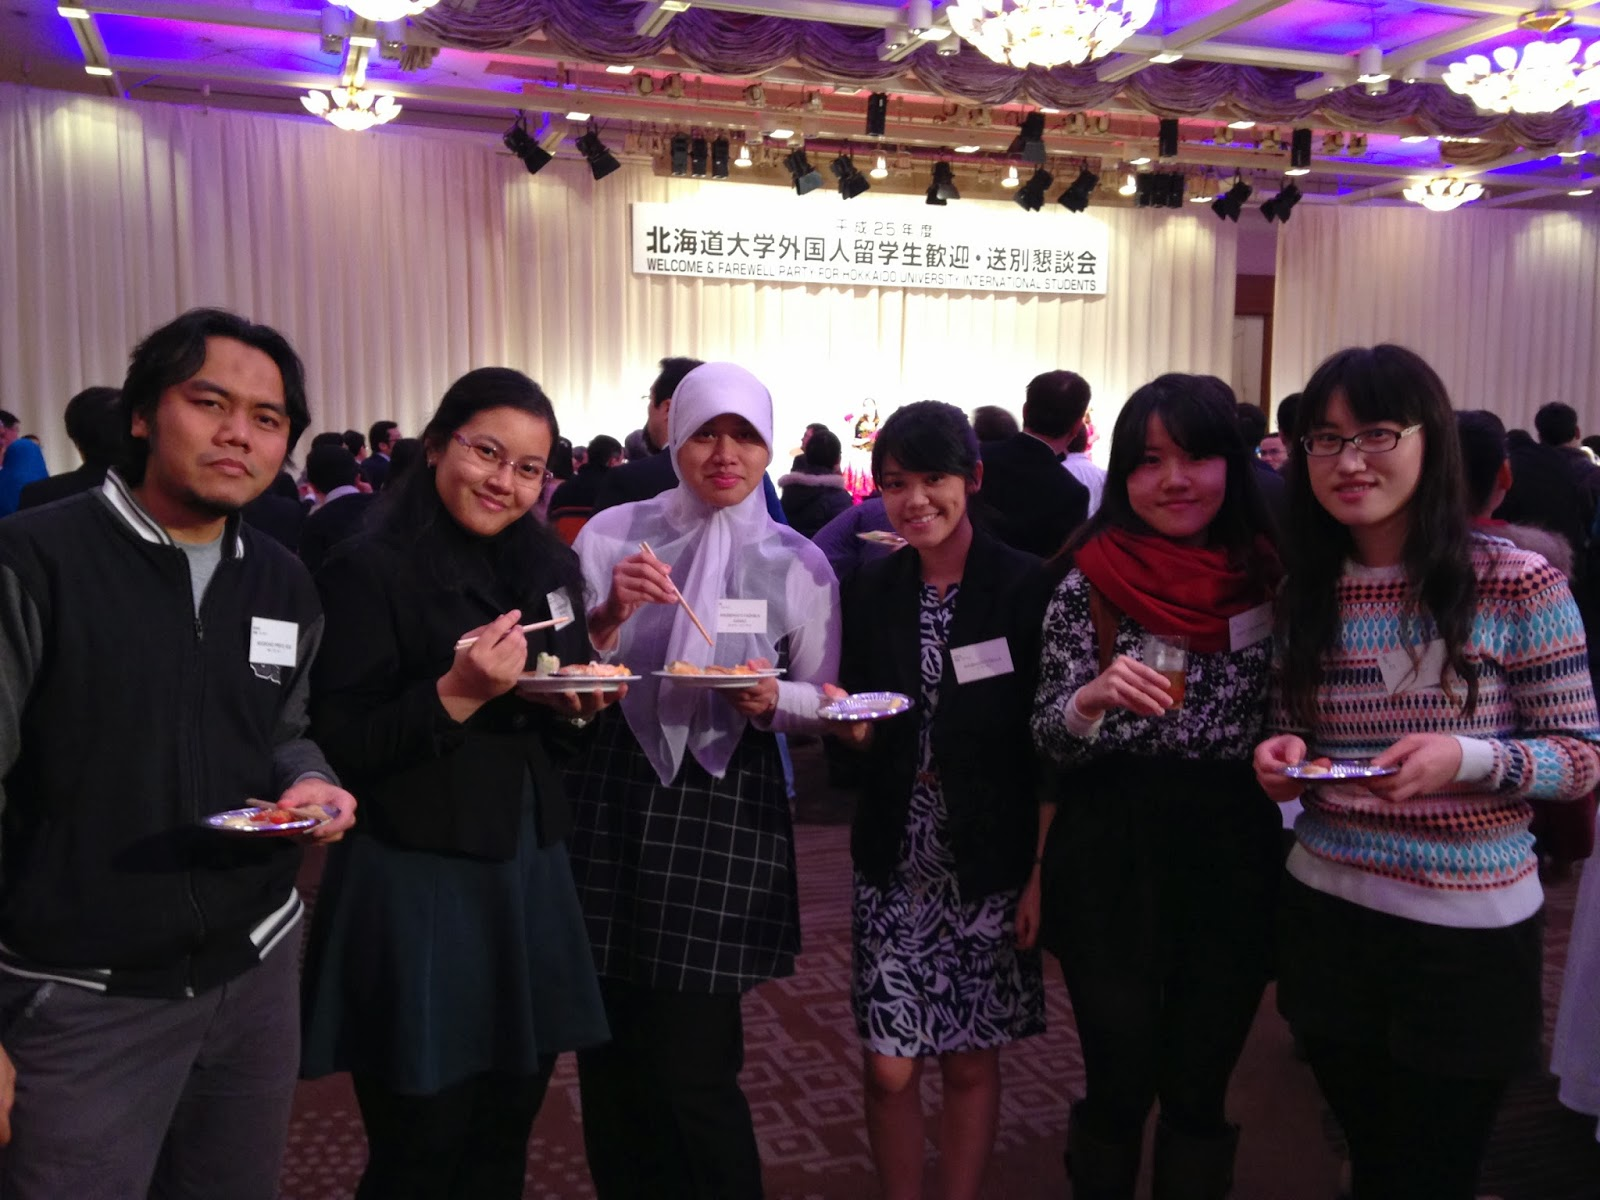 sapporo chat rooms 10 reviews of ナナズグリーンティー 札幌パセオ店 we stayed in sapporo for 4 nights it's perfect for a chat with find more tea rooms near.